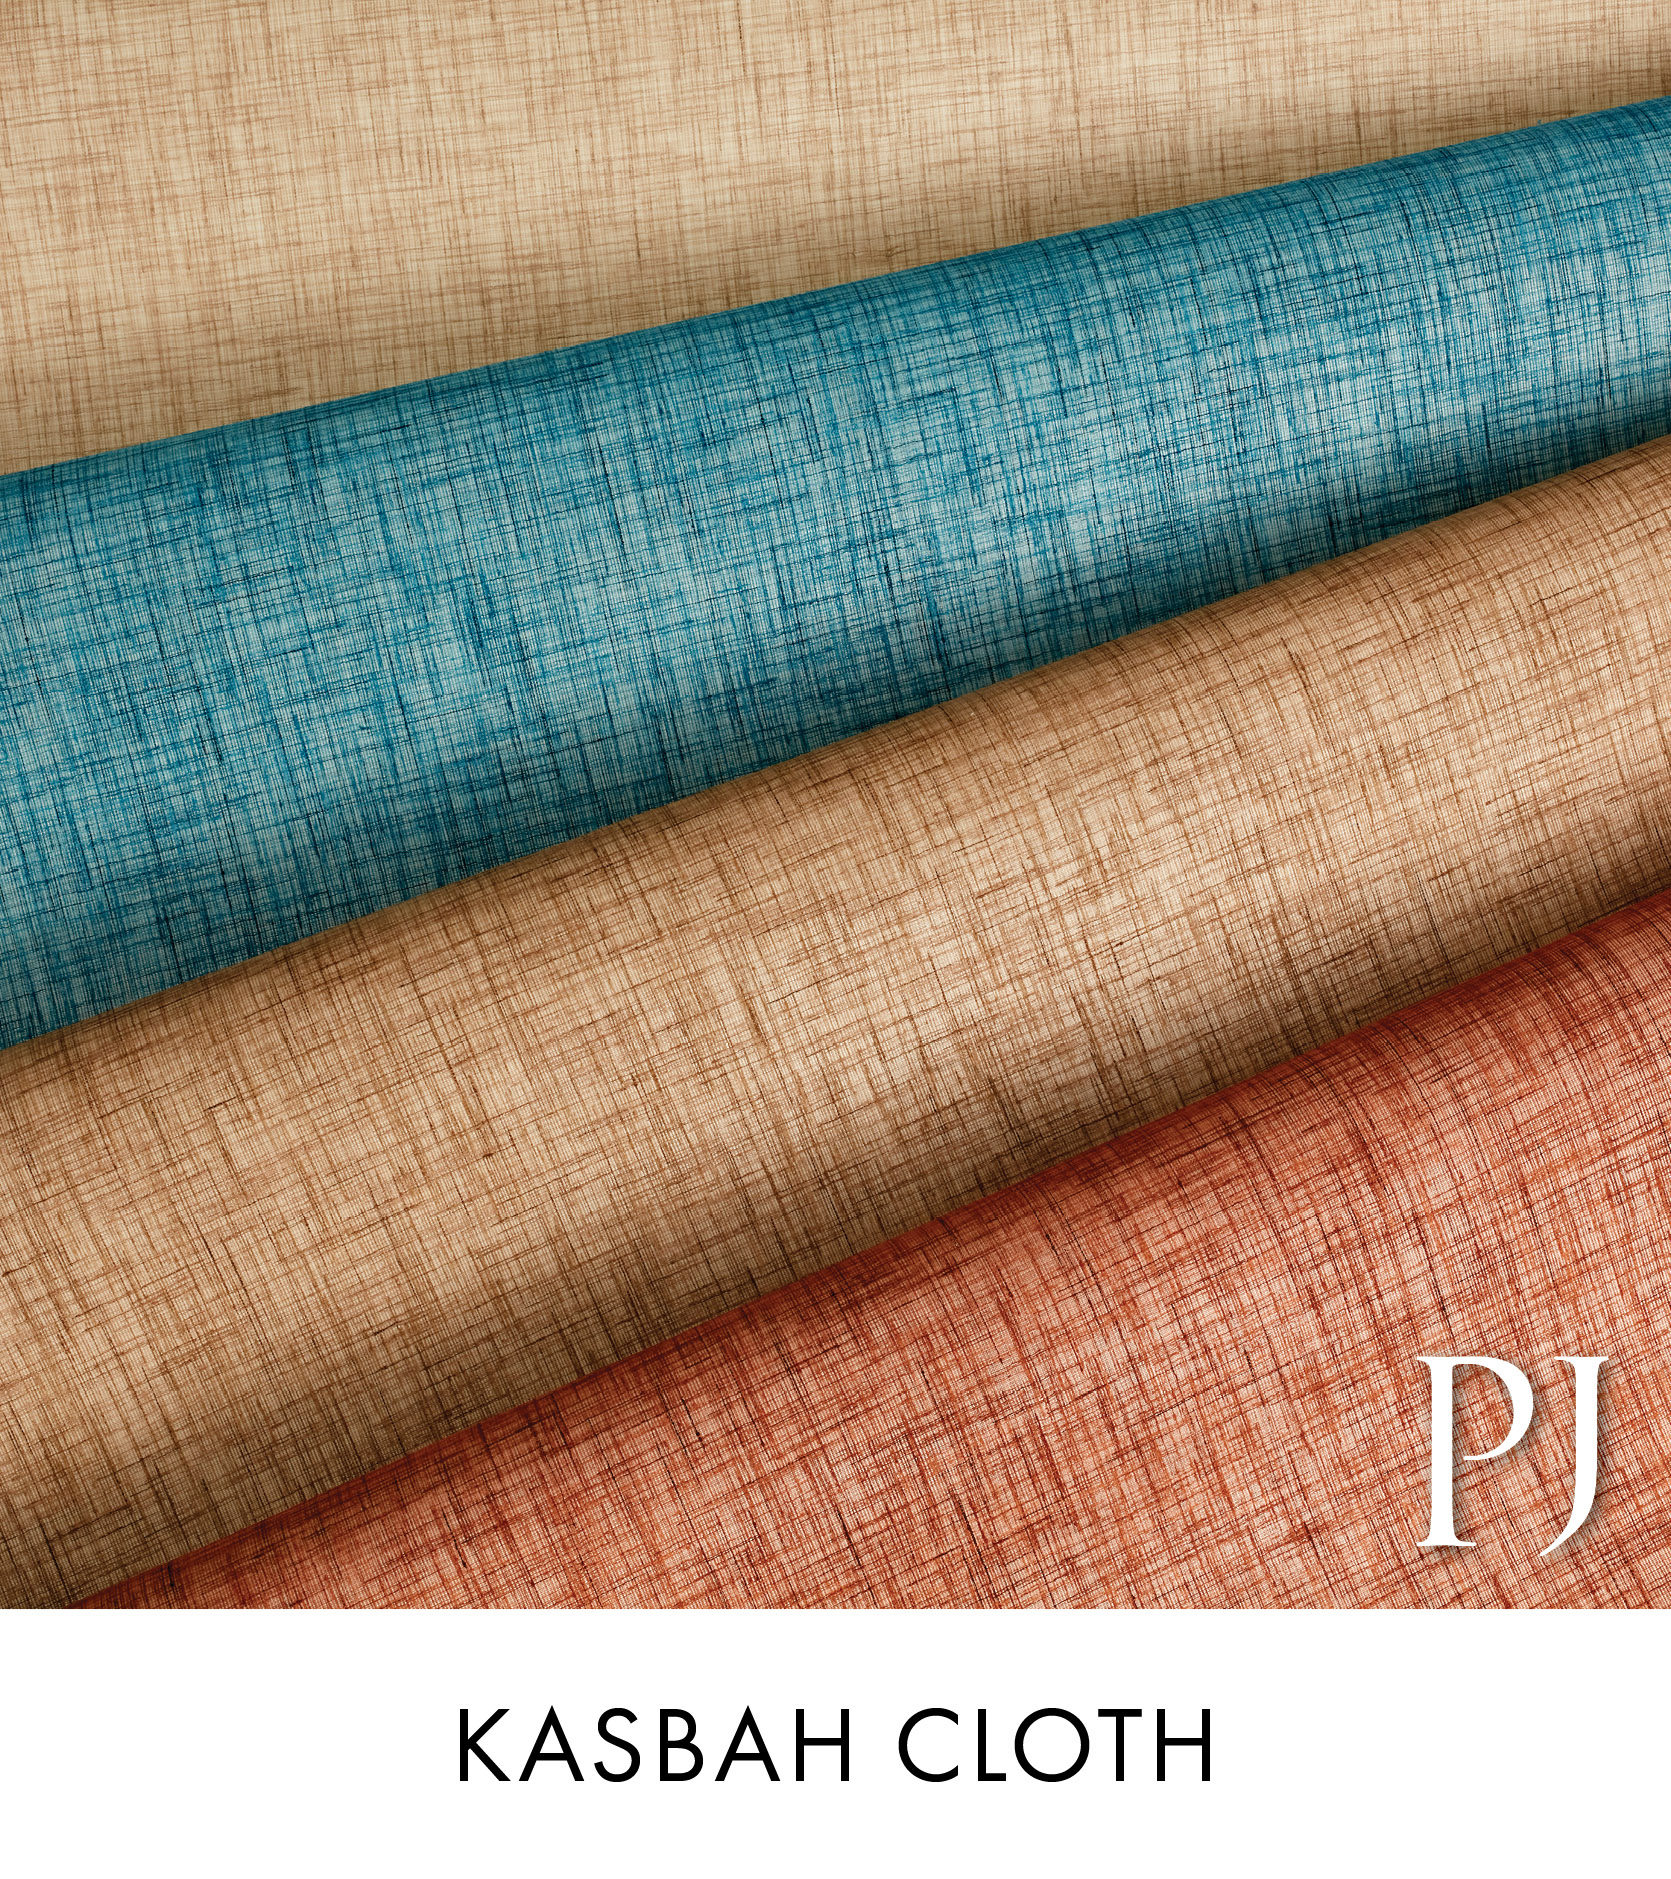 Kasbah Cloth